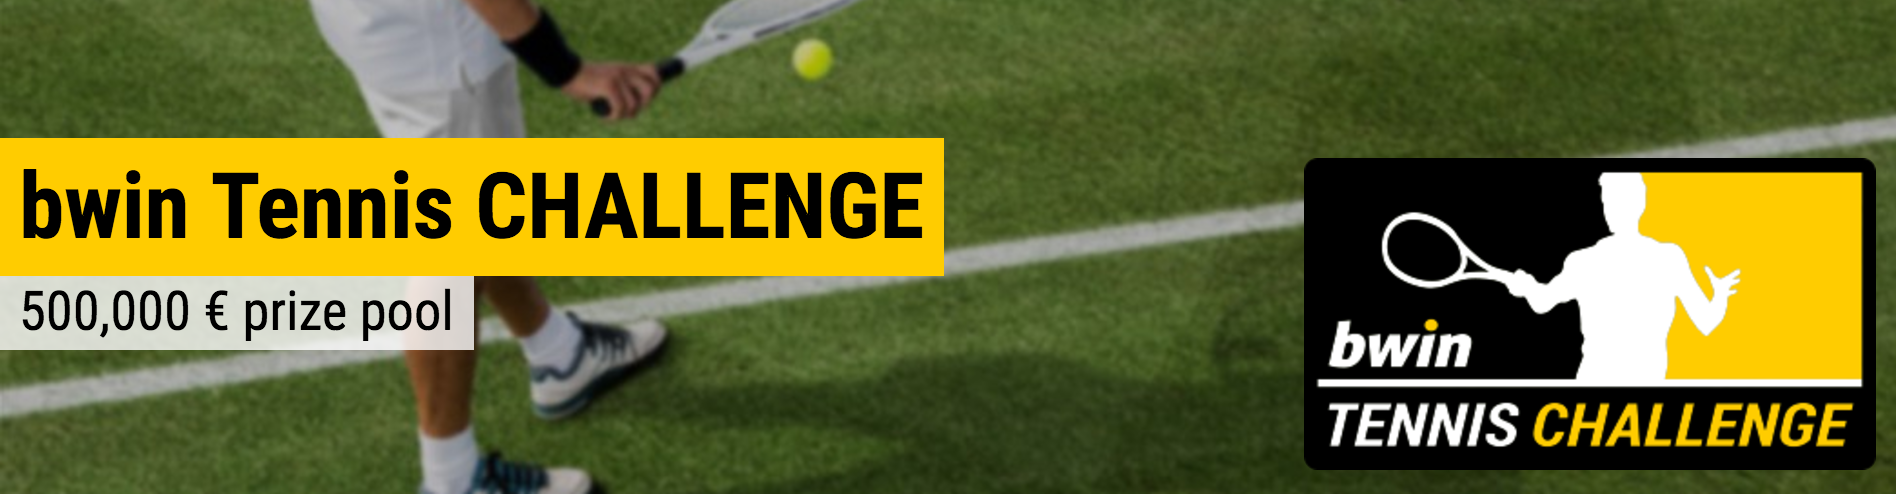 bwin Tennis CHALLENGE - €500,000 prize pool!